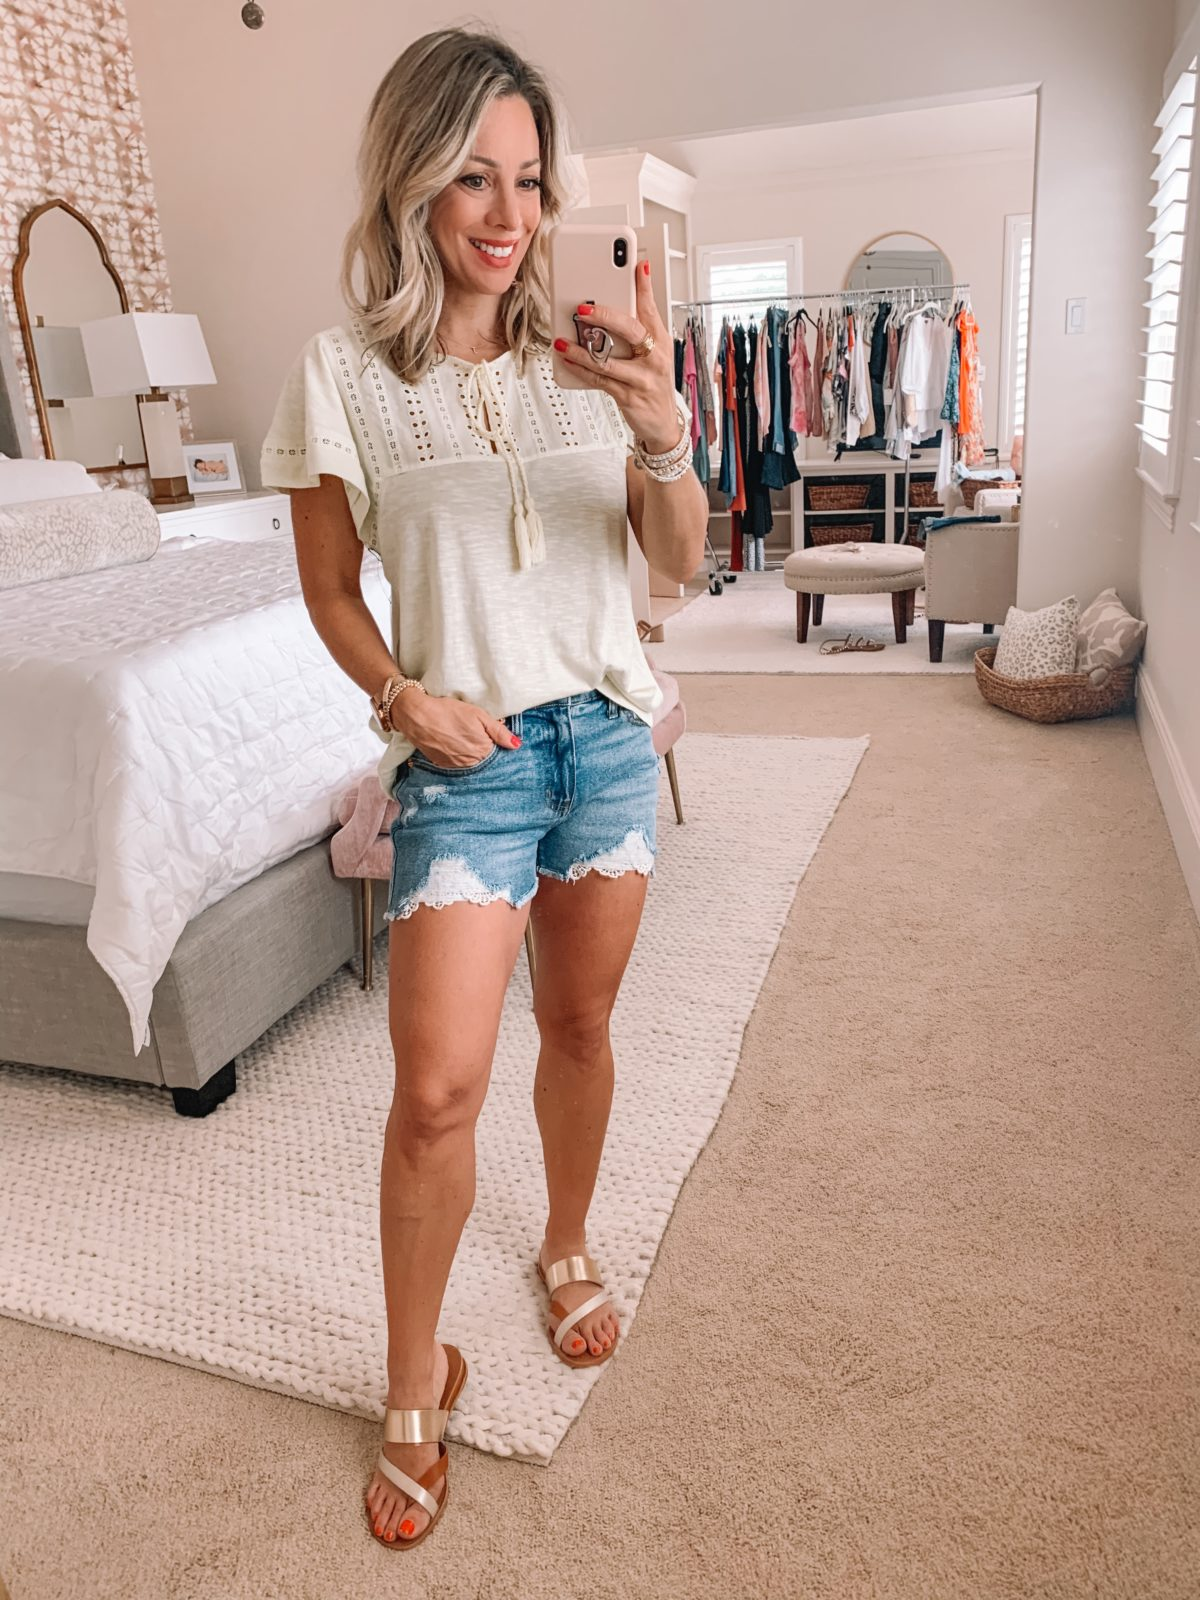 Dressing Room Finds Nordstrom and Target, Embroidered Ruffle Sleeve Top, Crochet Hemmed Denim Shorts, Studded Sandals